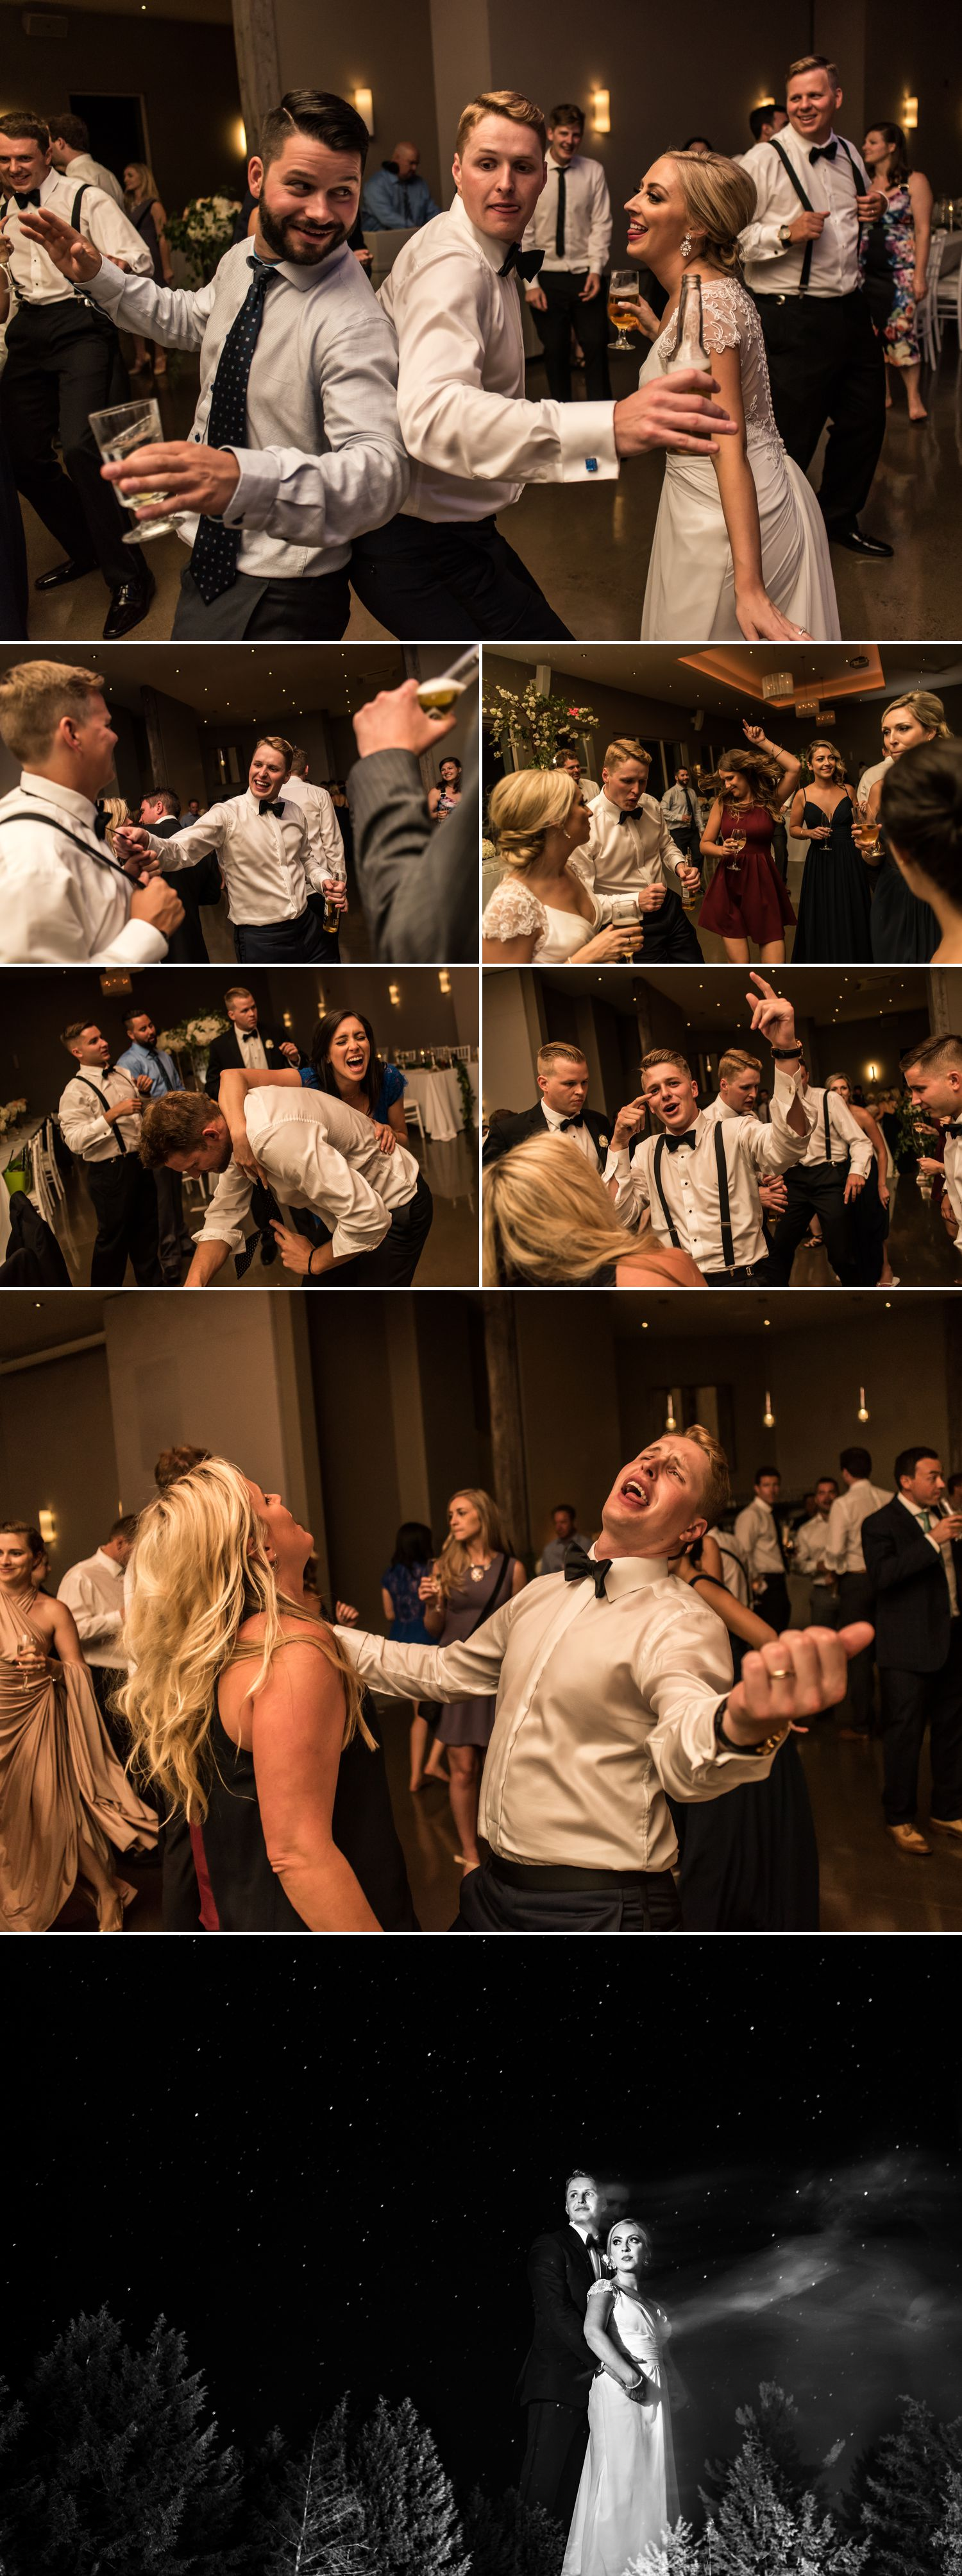 dance-party-during-a-wedding-at-le-belvedere-in-wakefield-quebec.jpg